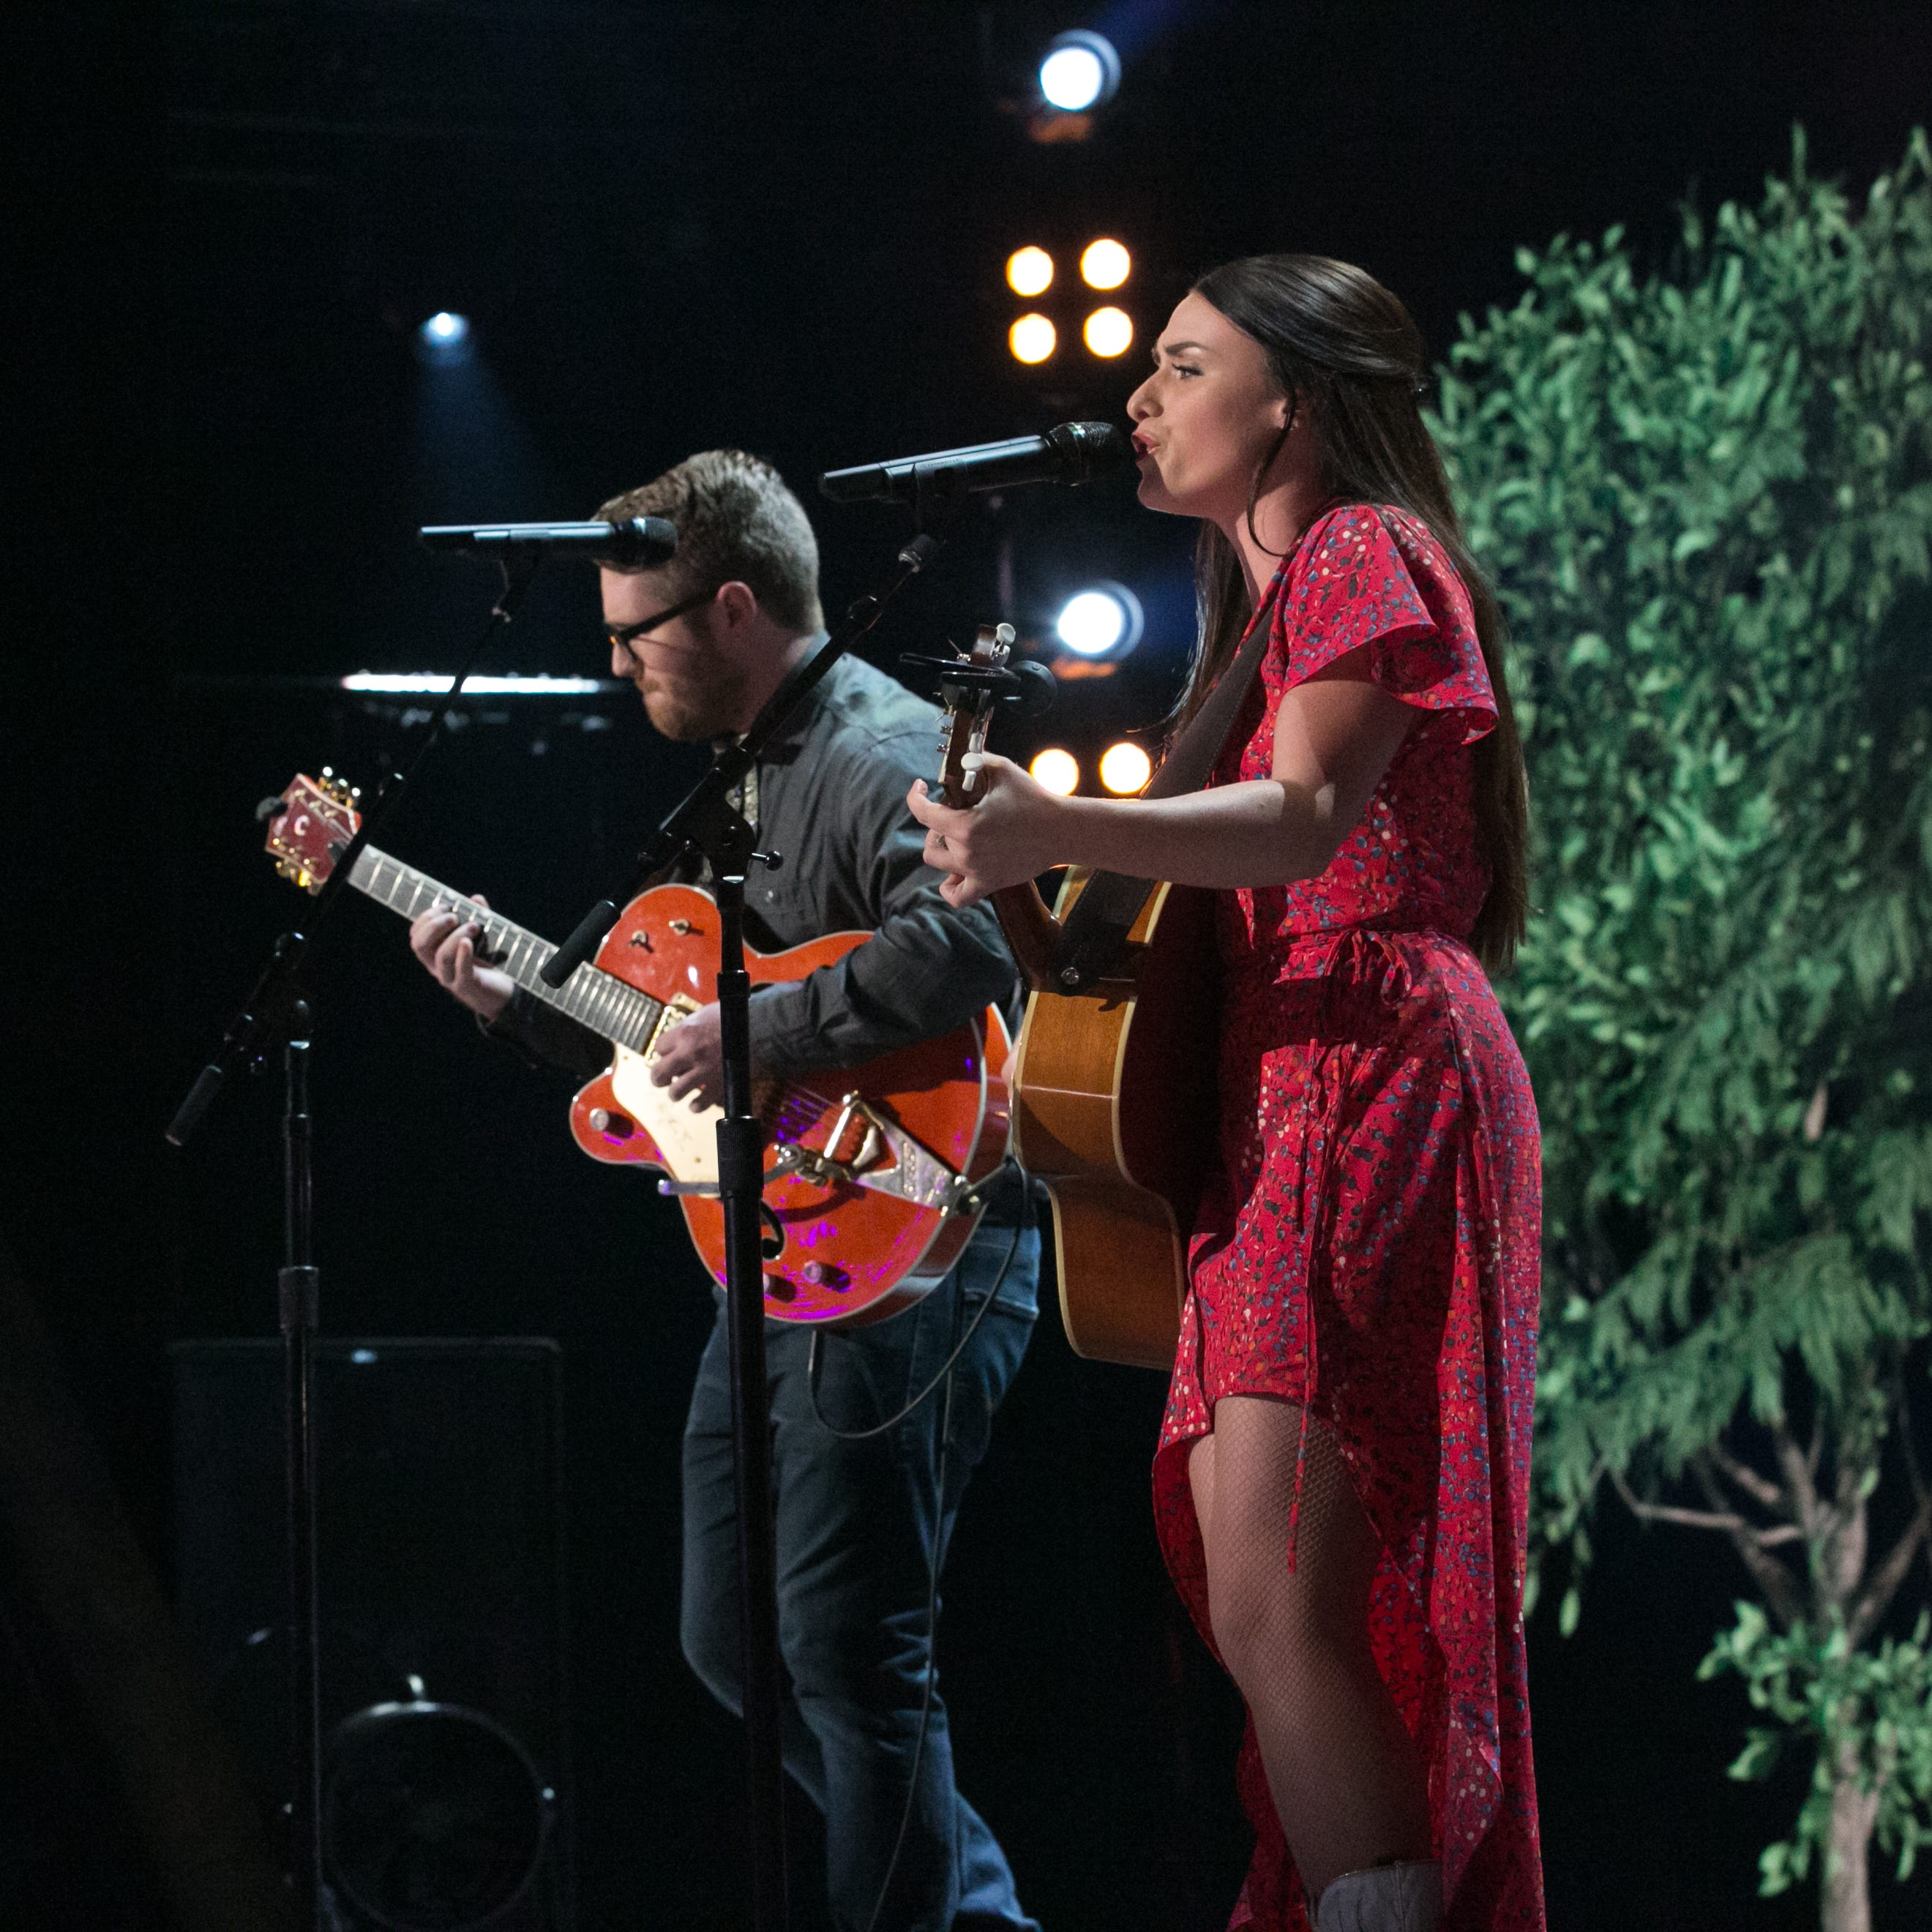 USA's 'Real Country': Maryville's The Young Fables to appear on new country music show